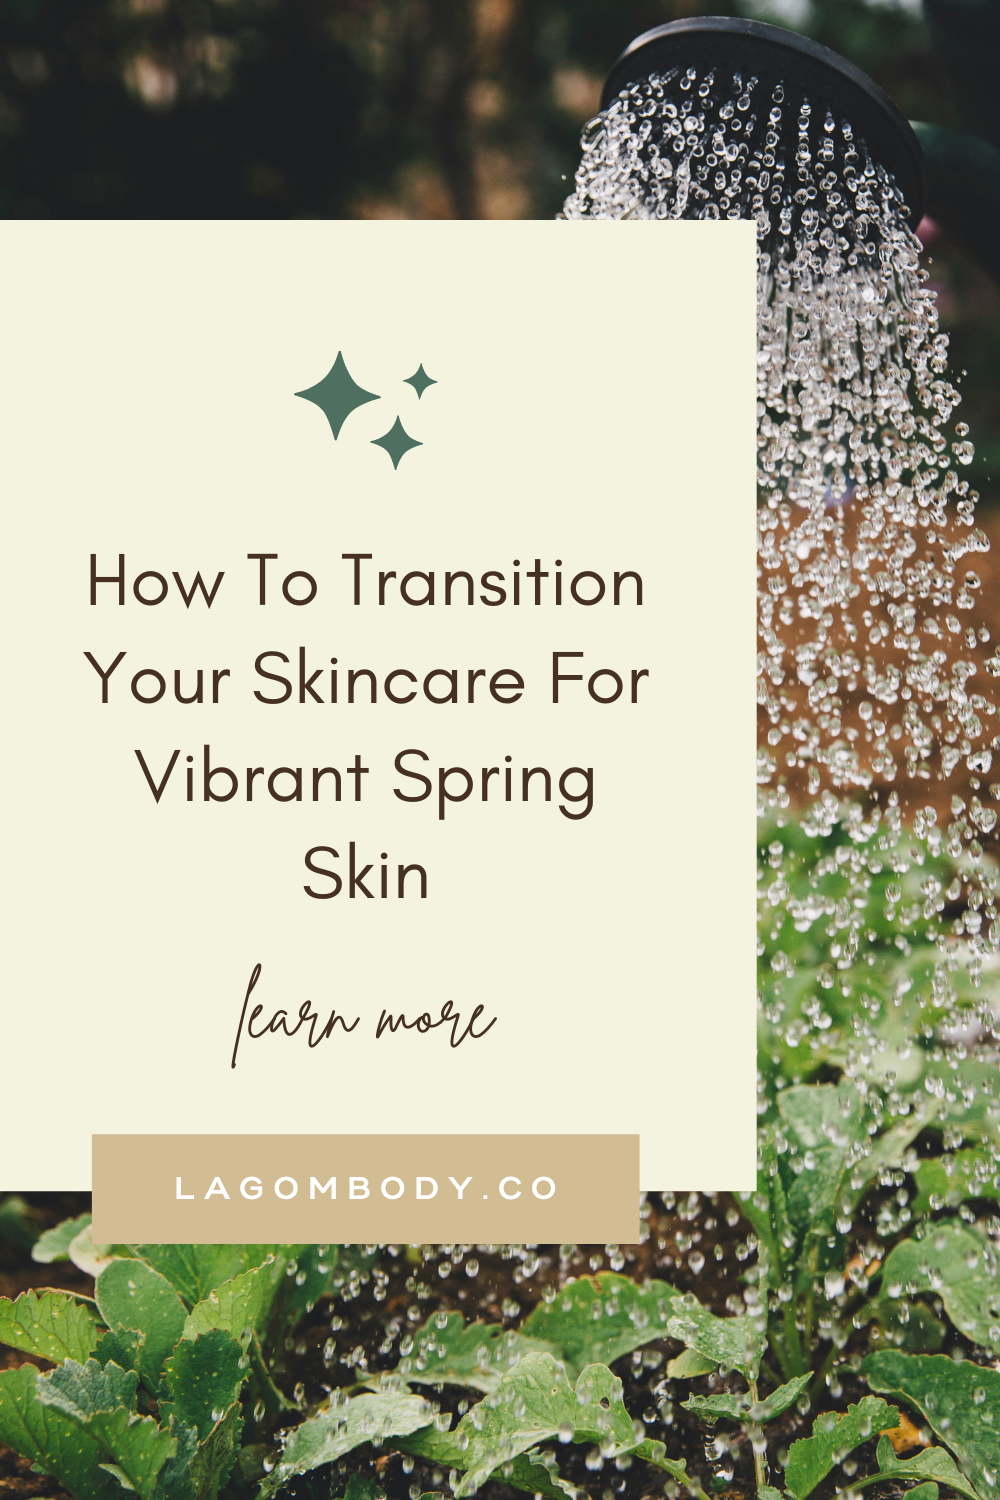 How To Transition Your Skincare For Vibrant Spring Skin